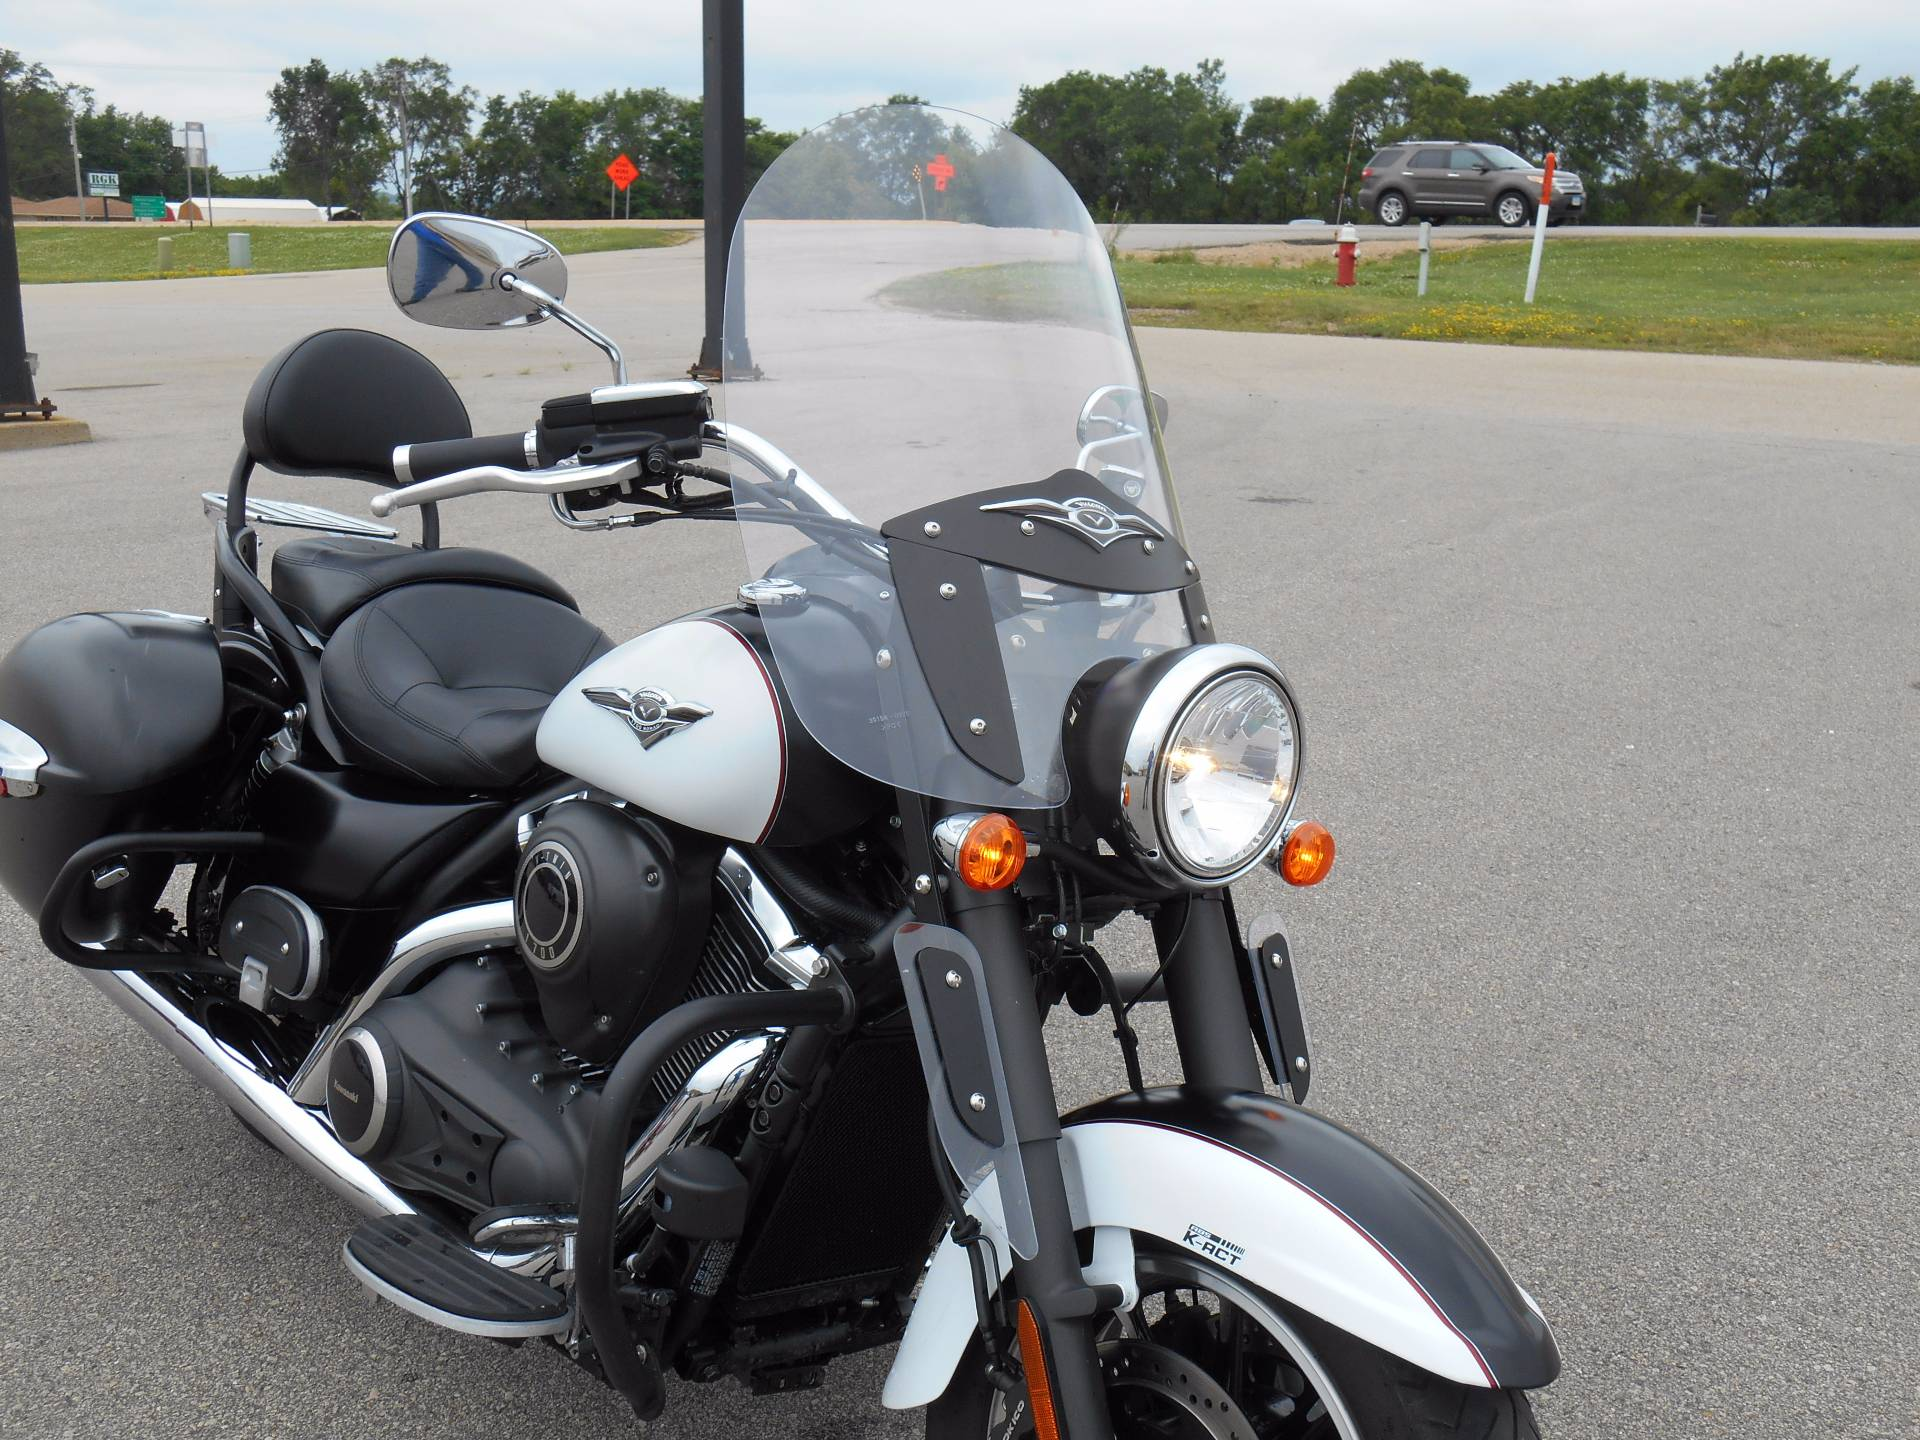 Used 2014 kawasaki vn1700 nomad motorcycles in dubuque ia for Nomad scheduler